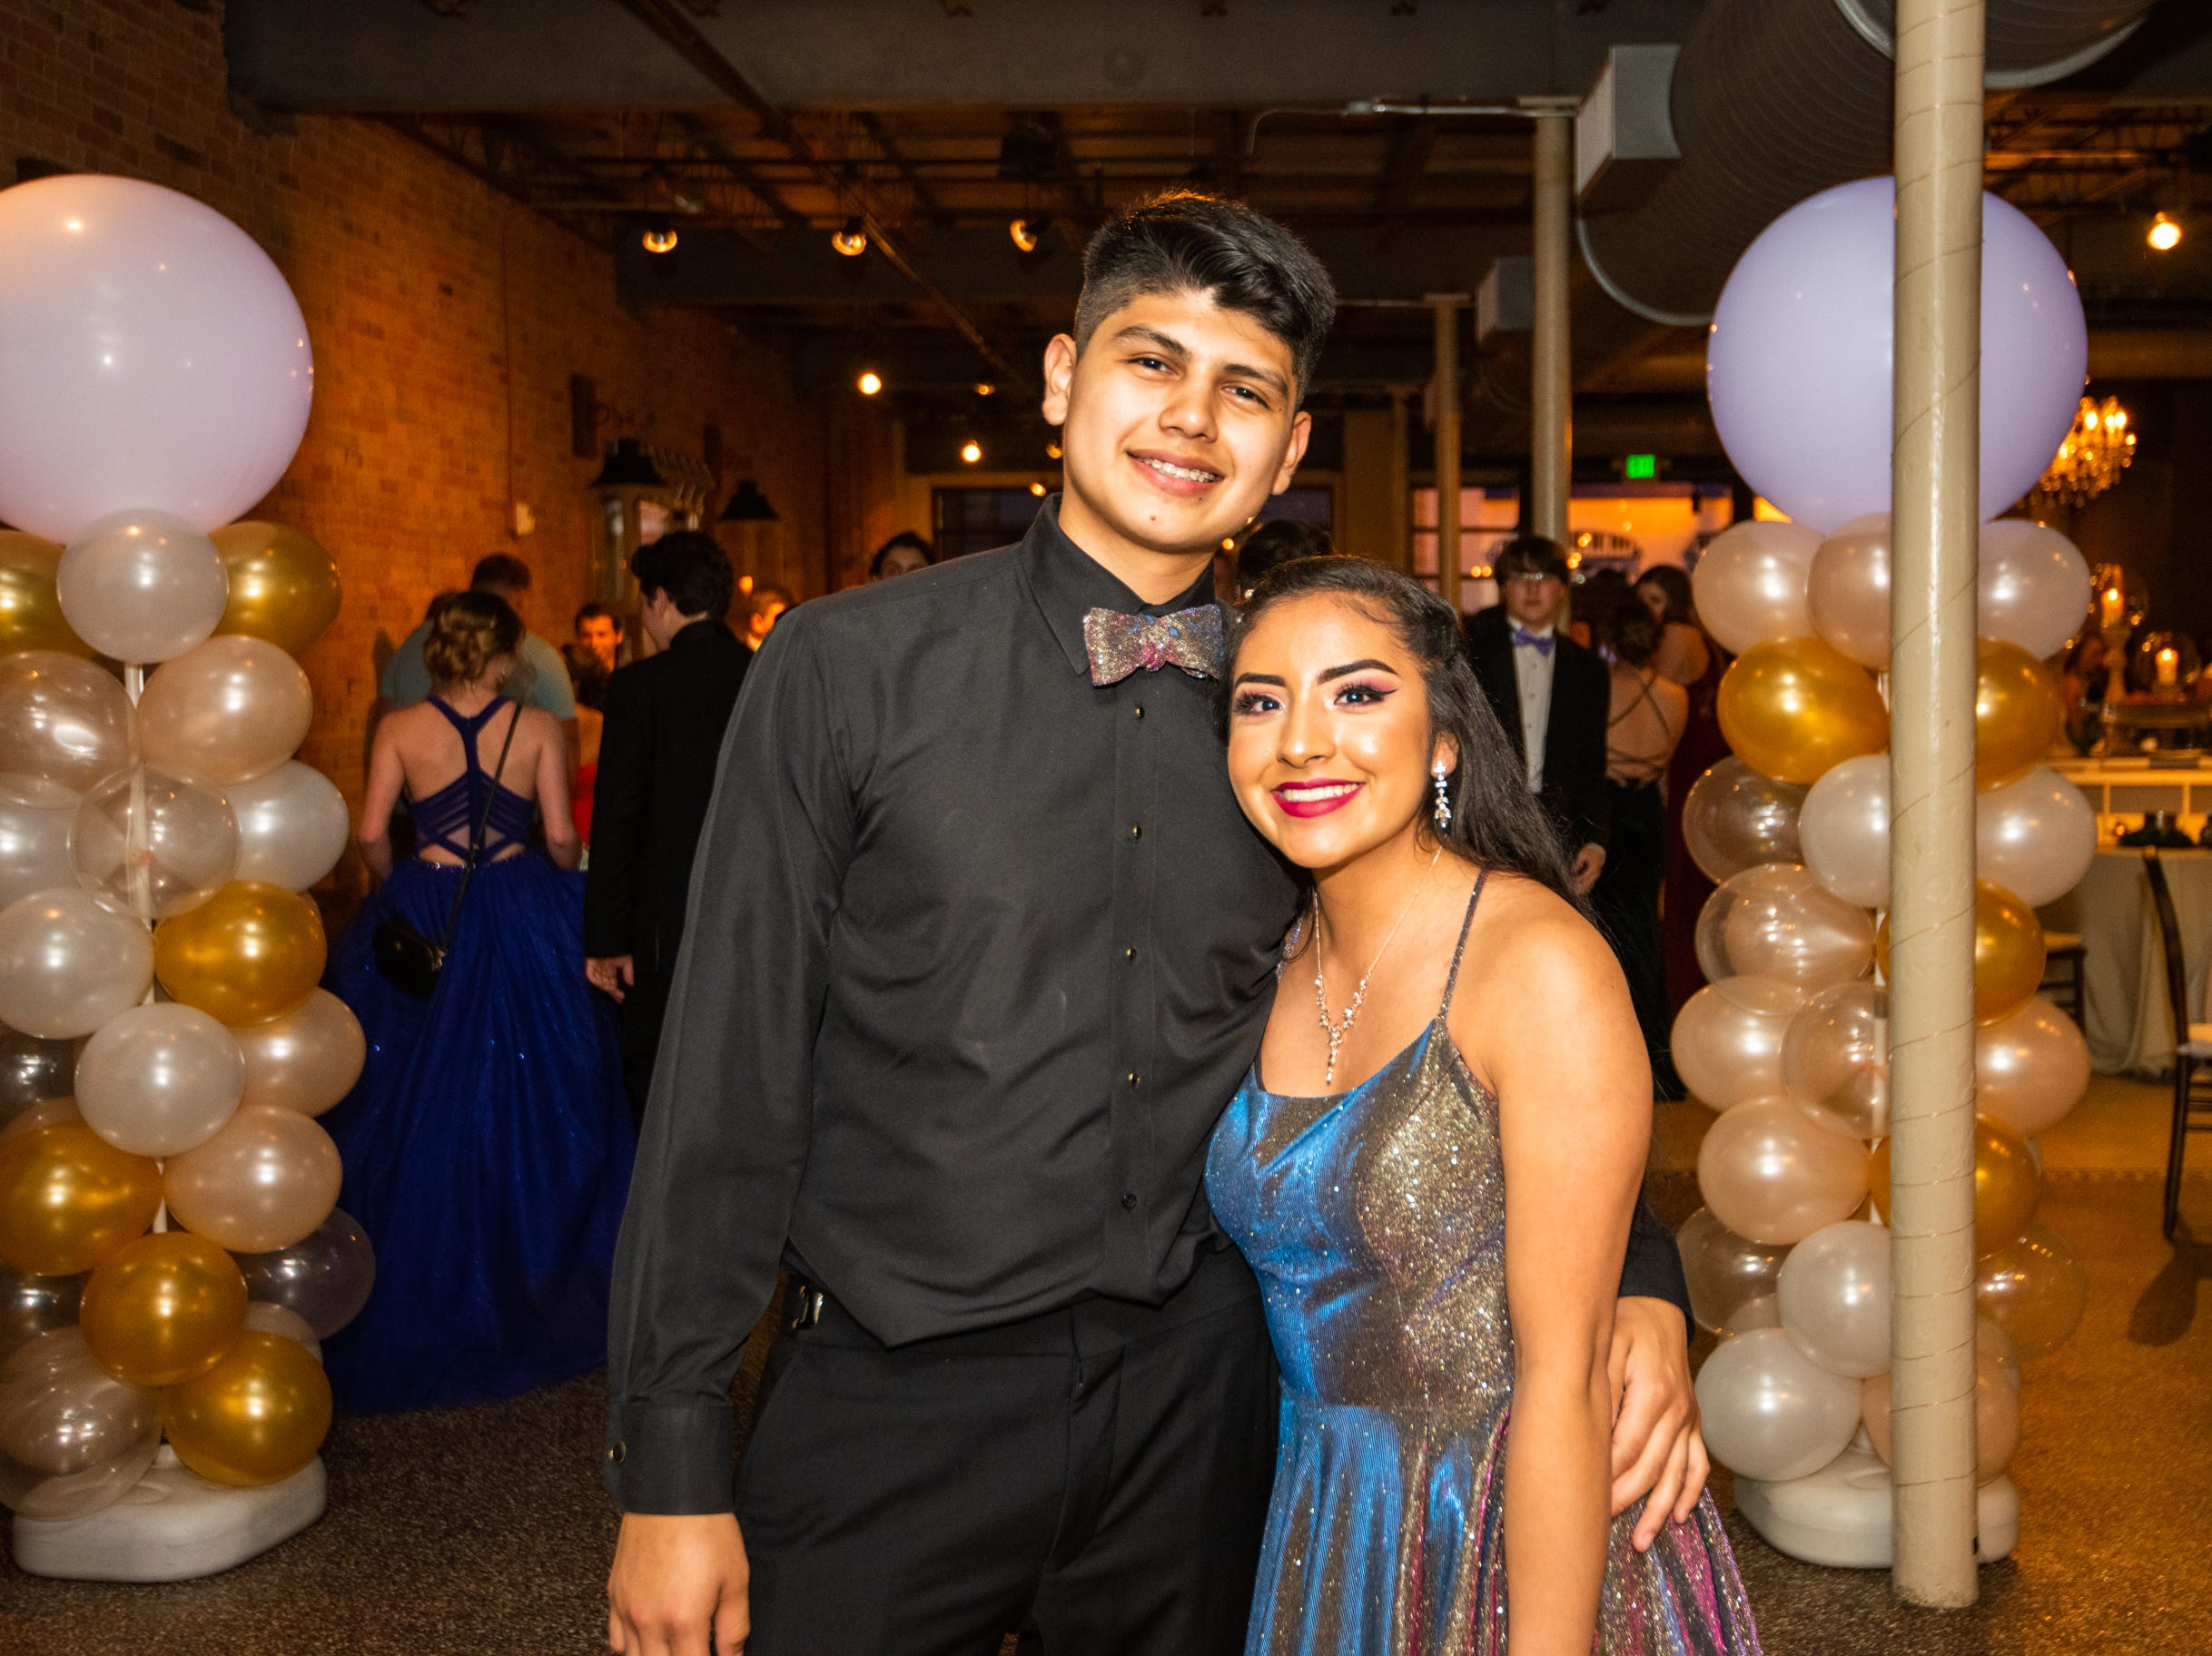 Reynolds High School students celebrate and dance the night away at prom on May 4, 2019, at The Venue in downtown Asheville.